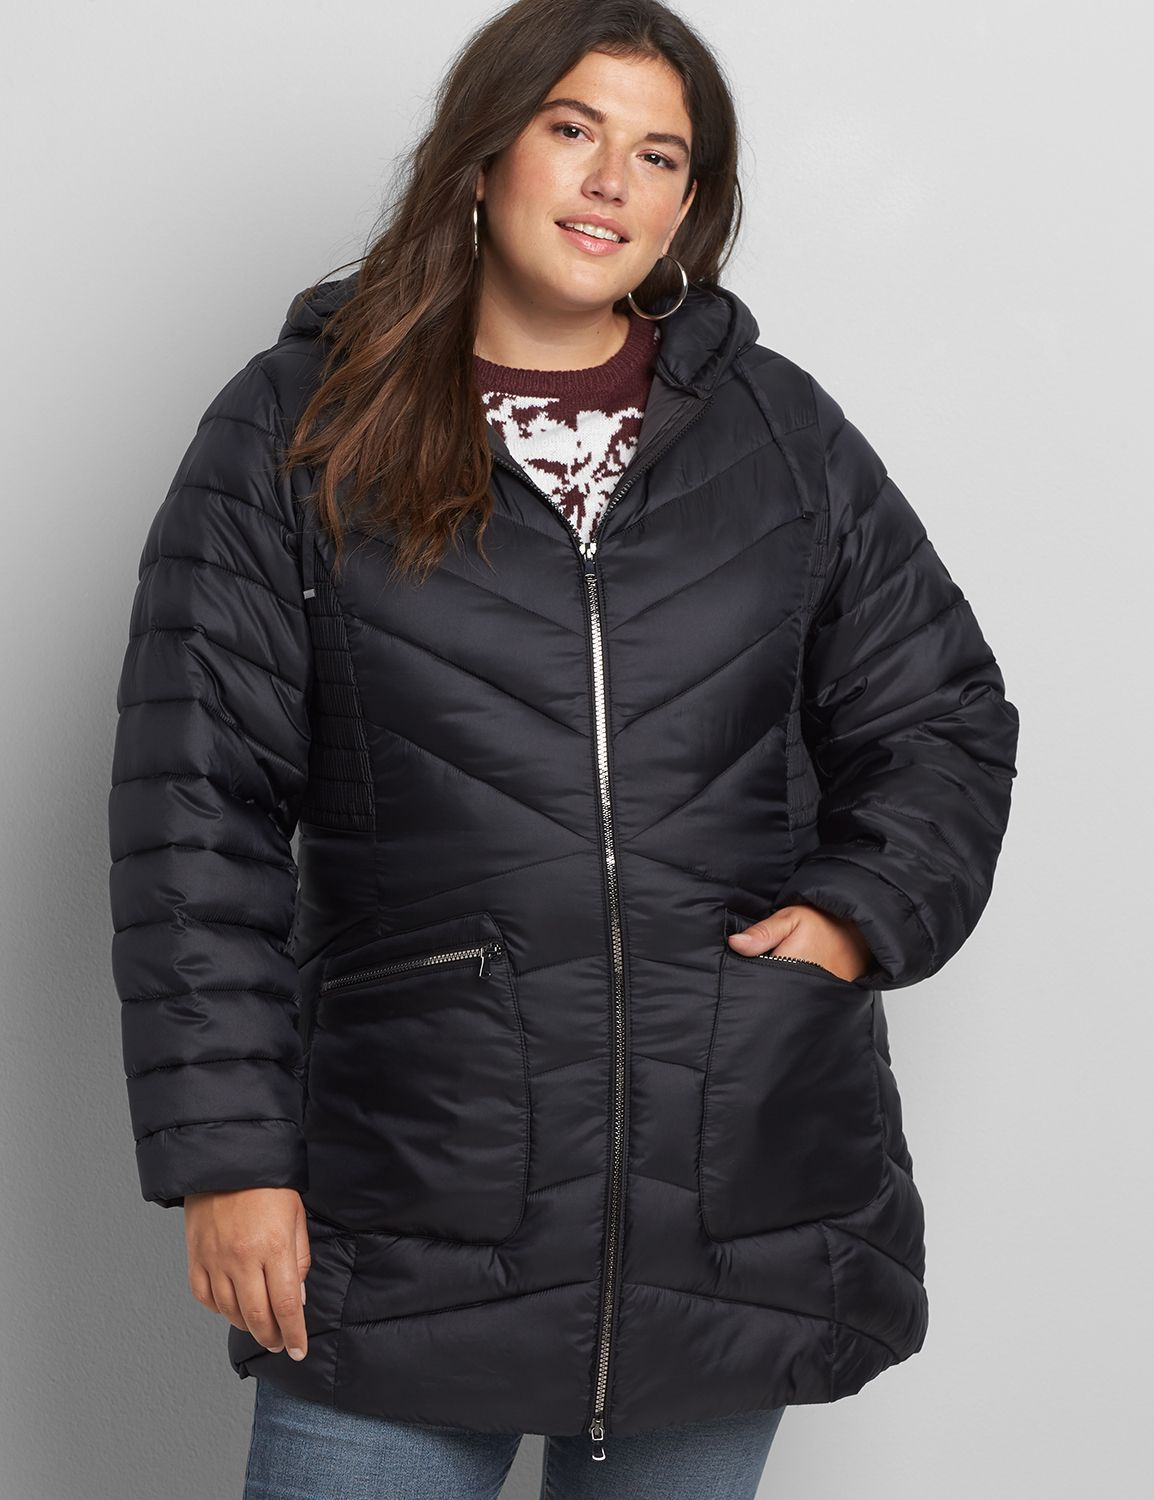 Shirred Side Packable Puffer Jacket Lane Bryant In 2021 Plus Size Outerwear Puffer Jackets Peplum Jacket [ 1500 x 1154 Pixel ]